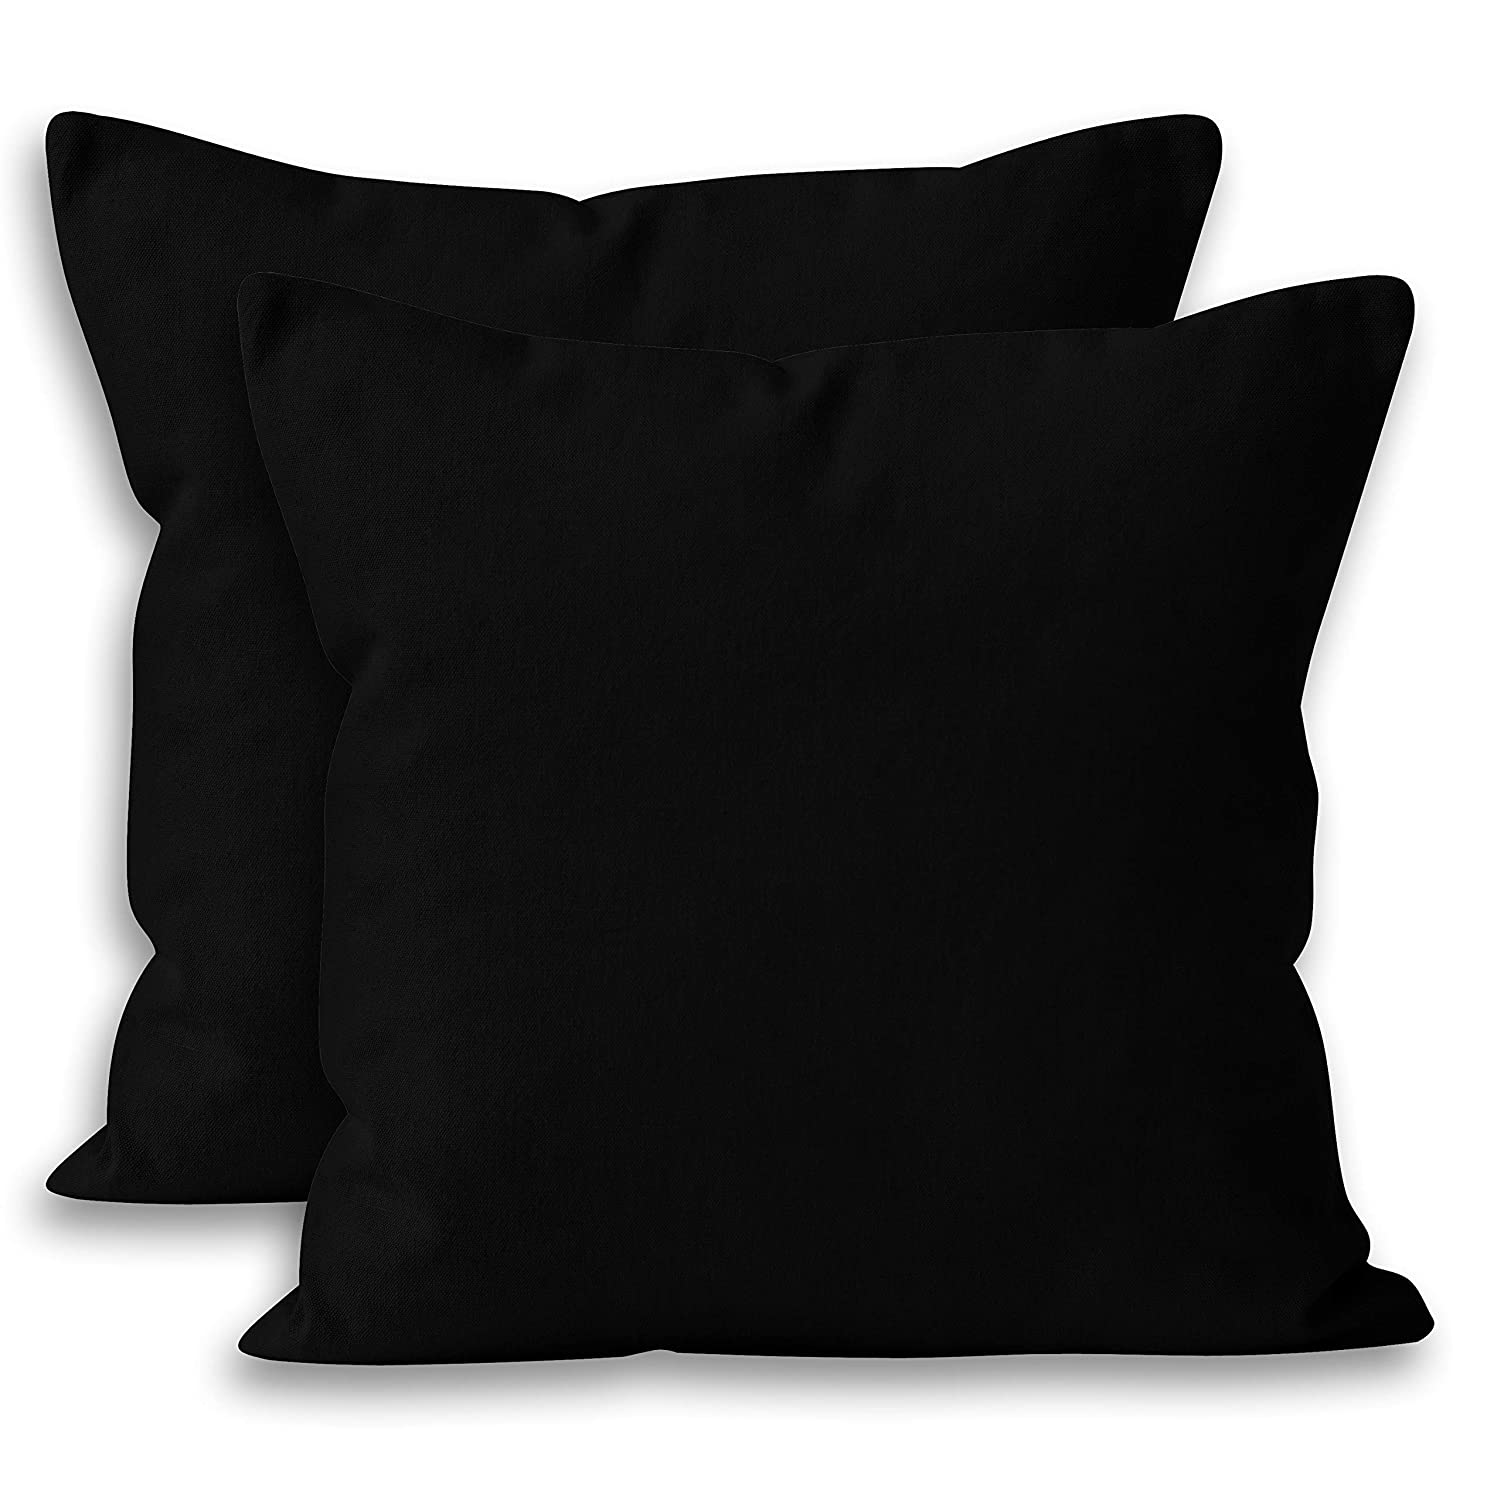 Encasa Homes Throw Cushion Cover 2pc Set - Jet Black - 20 x 20 inch Solid Dyed Cotton Canvas Square Accent Decorative Pillow Case for Couch Sofa Chair ...